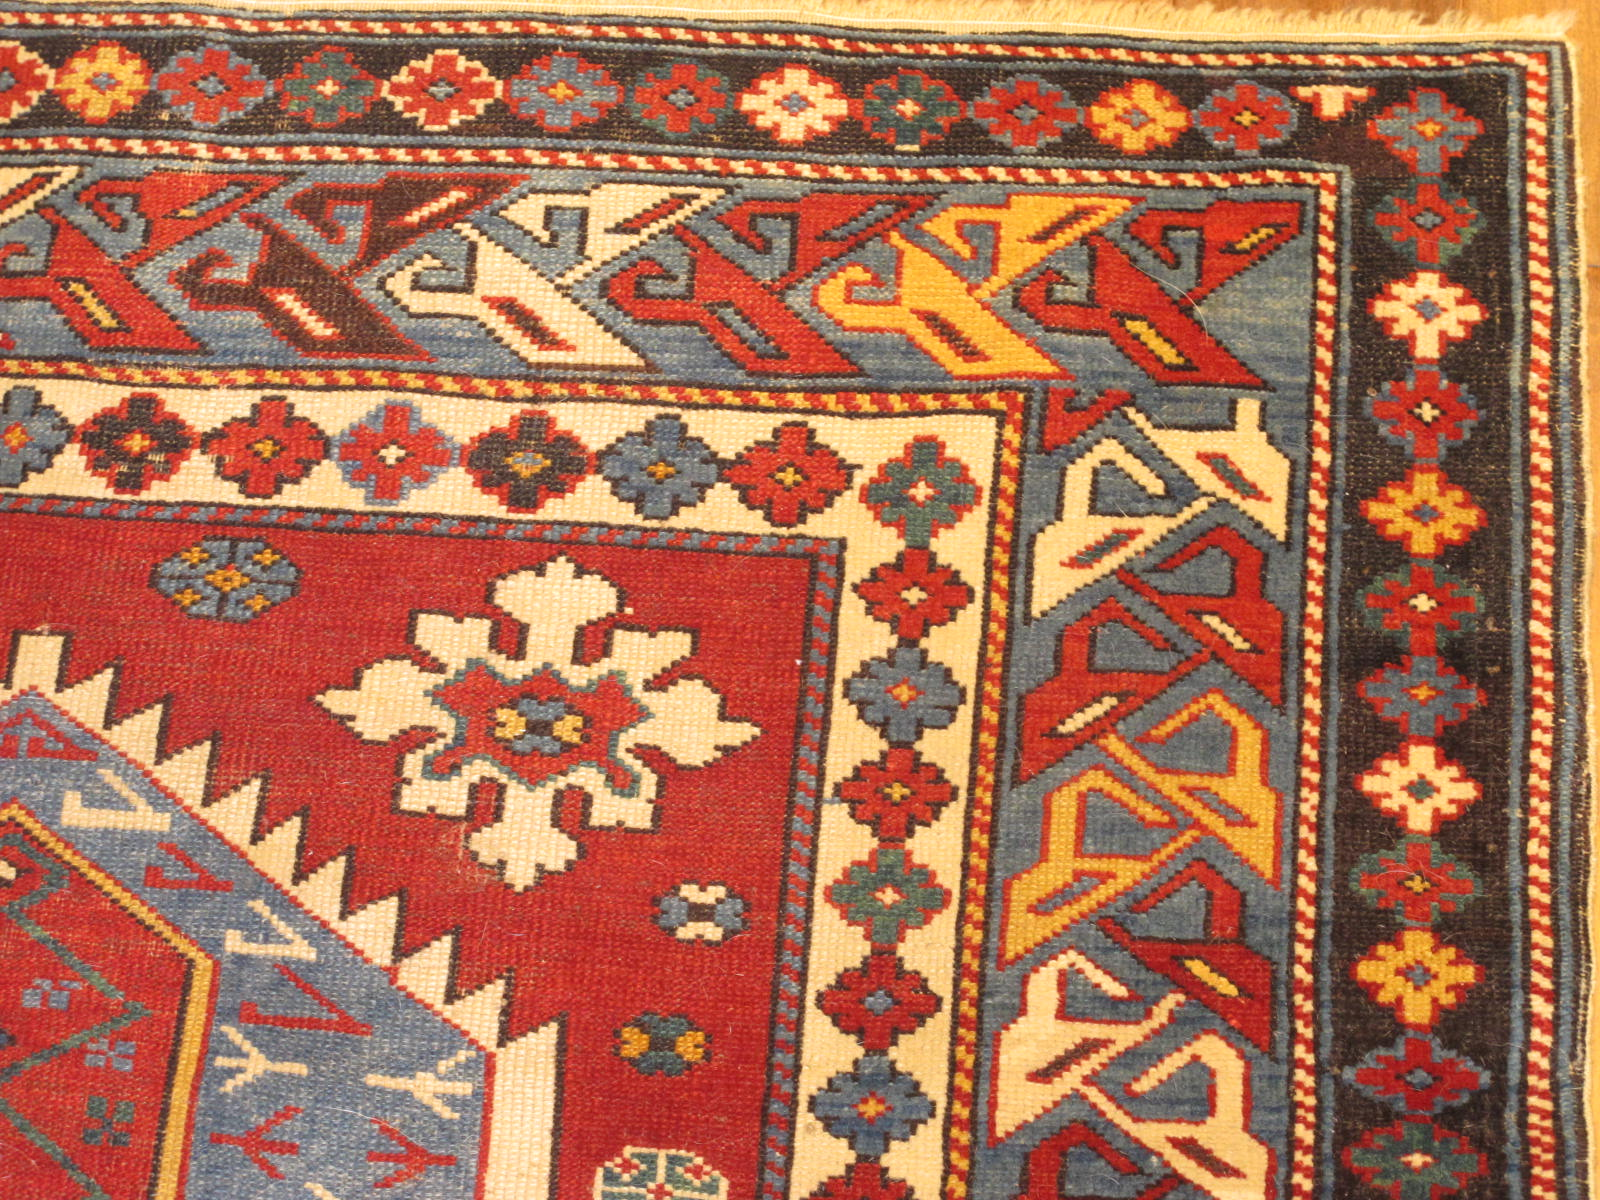 23188 antique caucasian shirvan rug 3,2 x 6,2 (2)